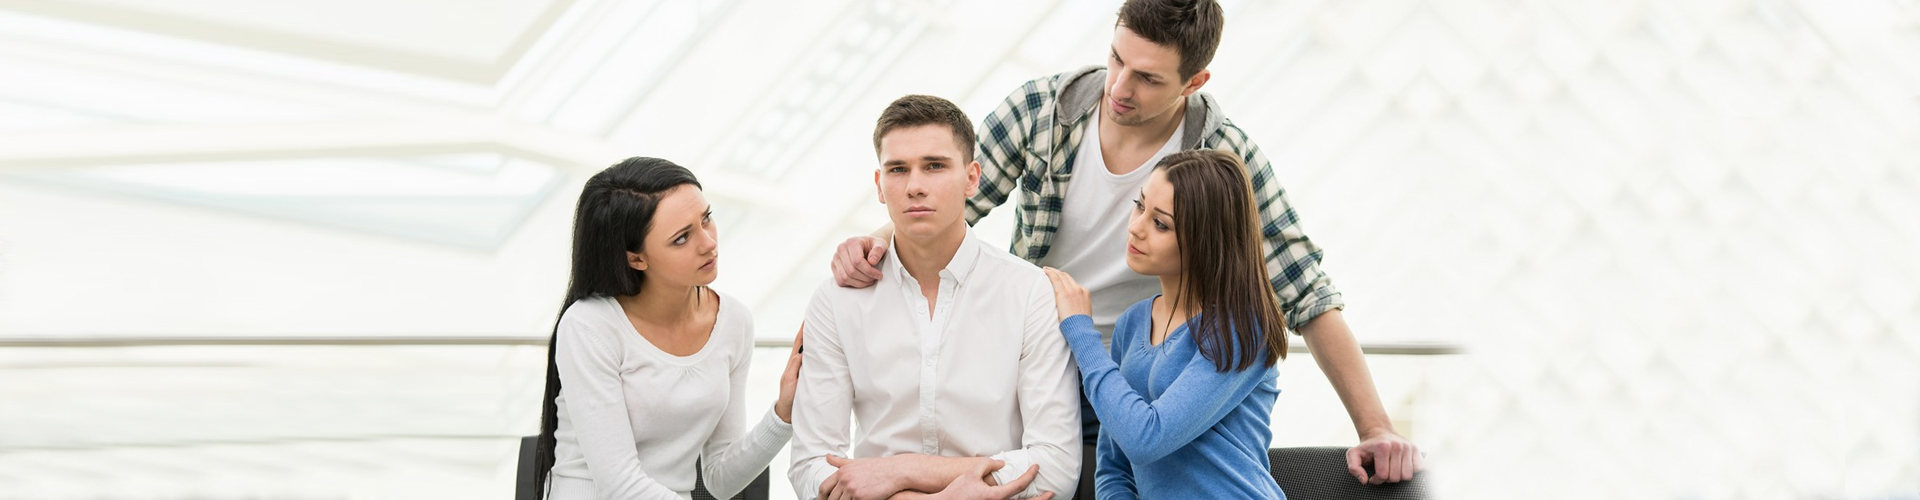 a man crying and is being comforted by his peers